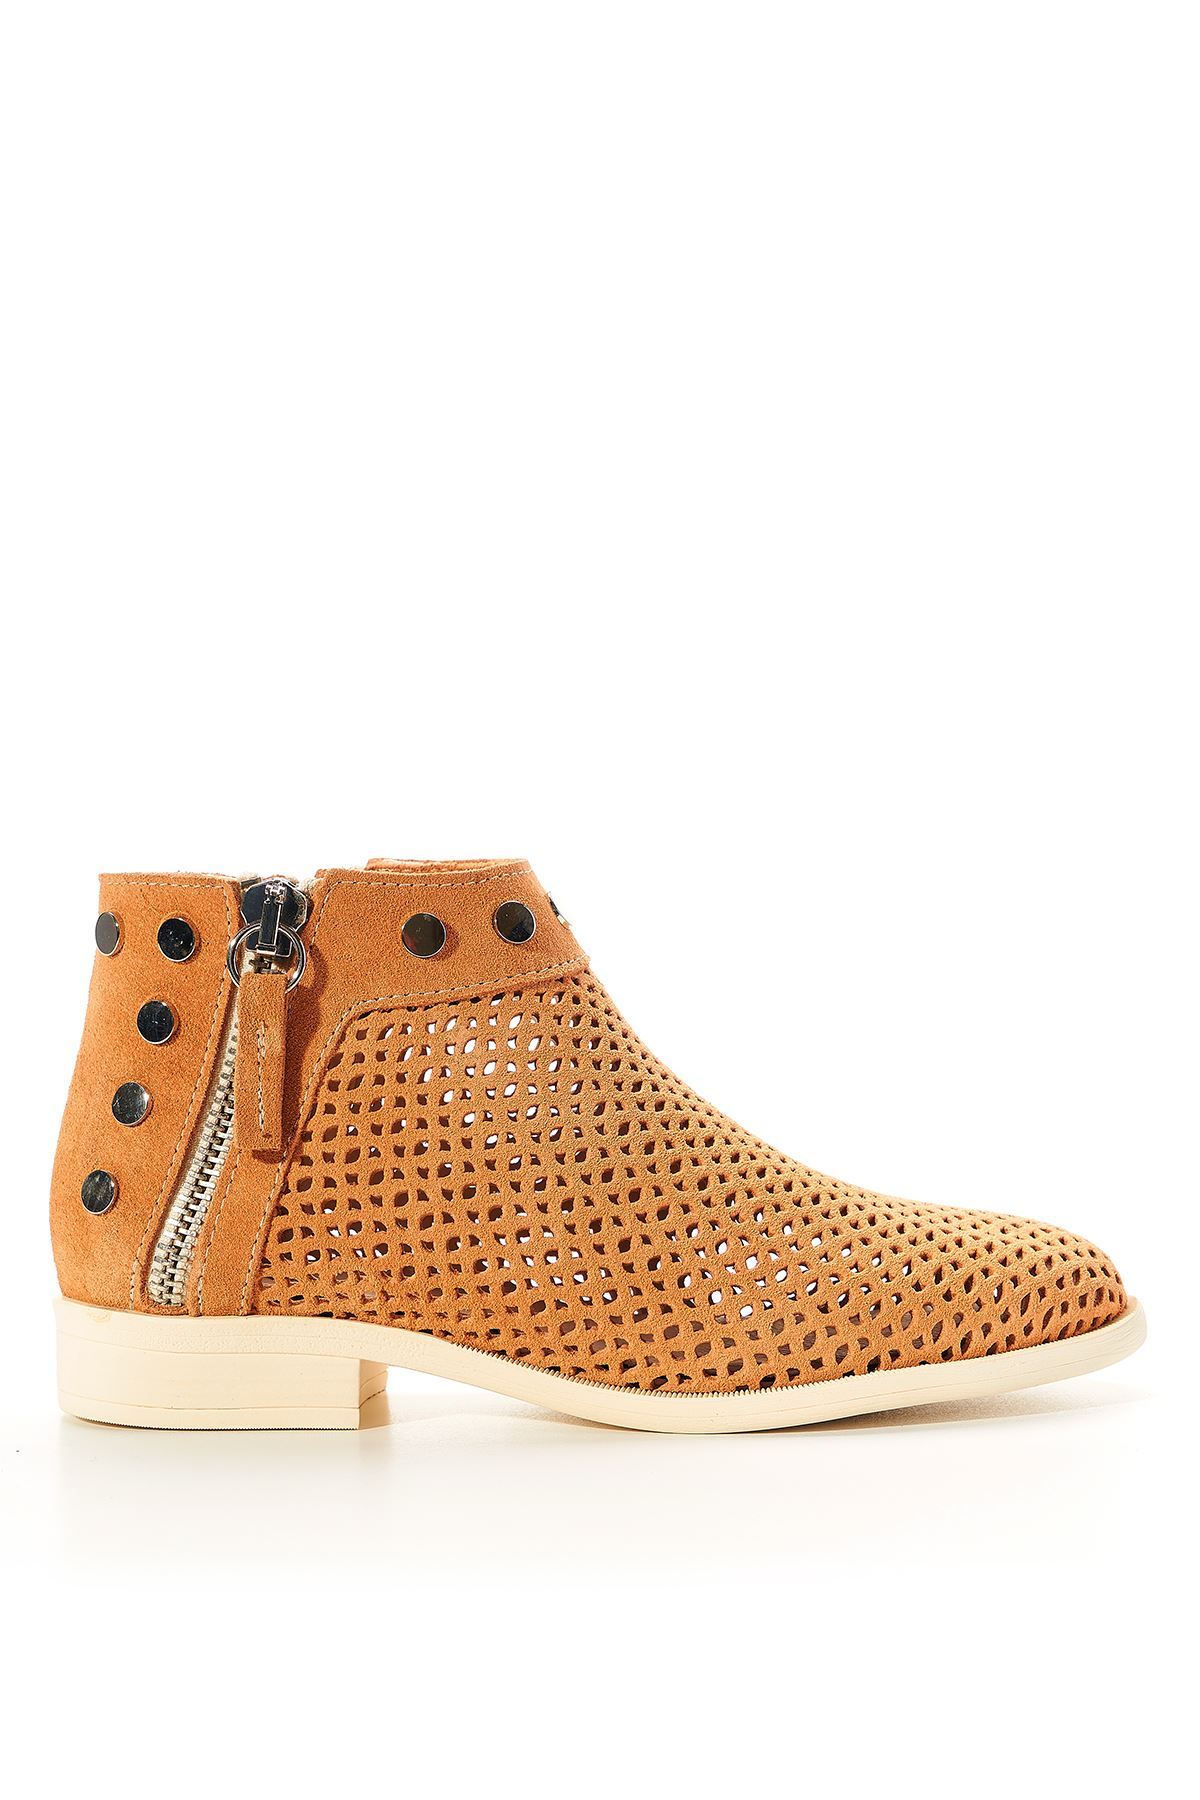 Shore Orange Genuine Leather Women's Summer Boots